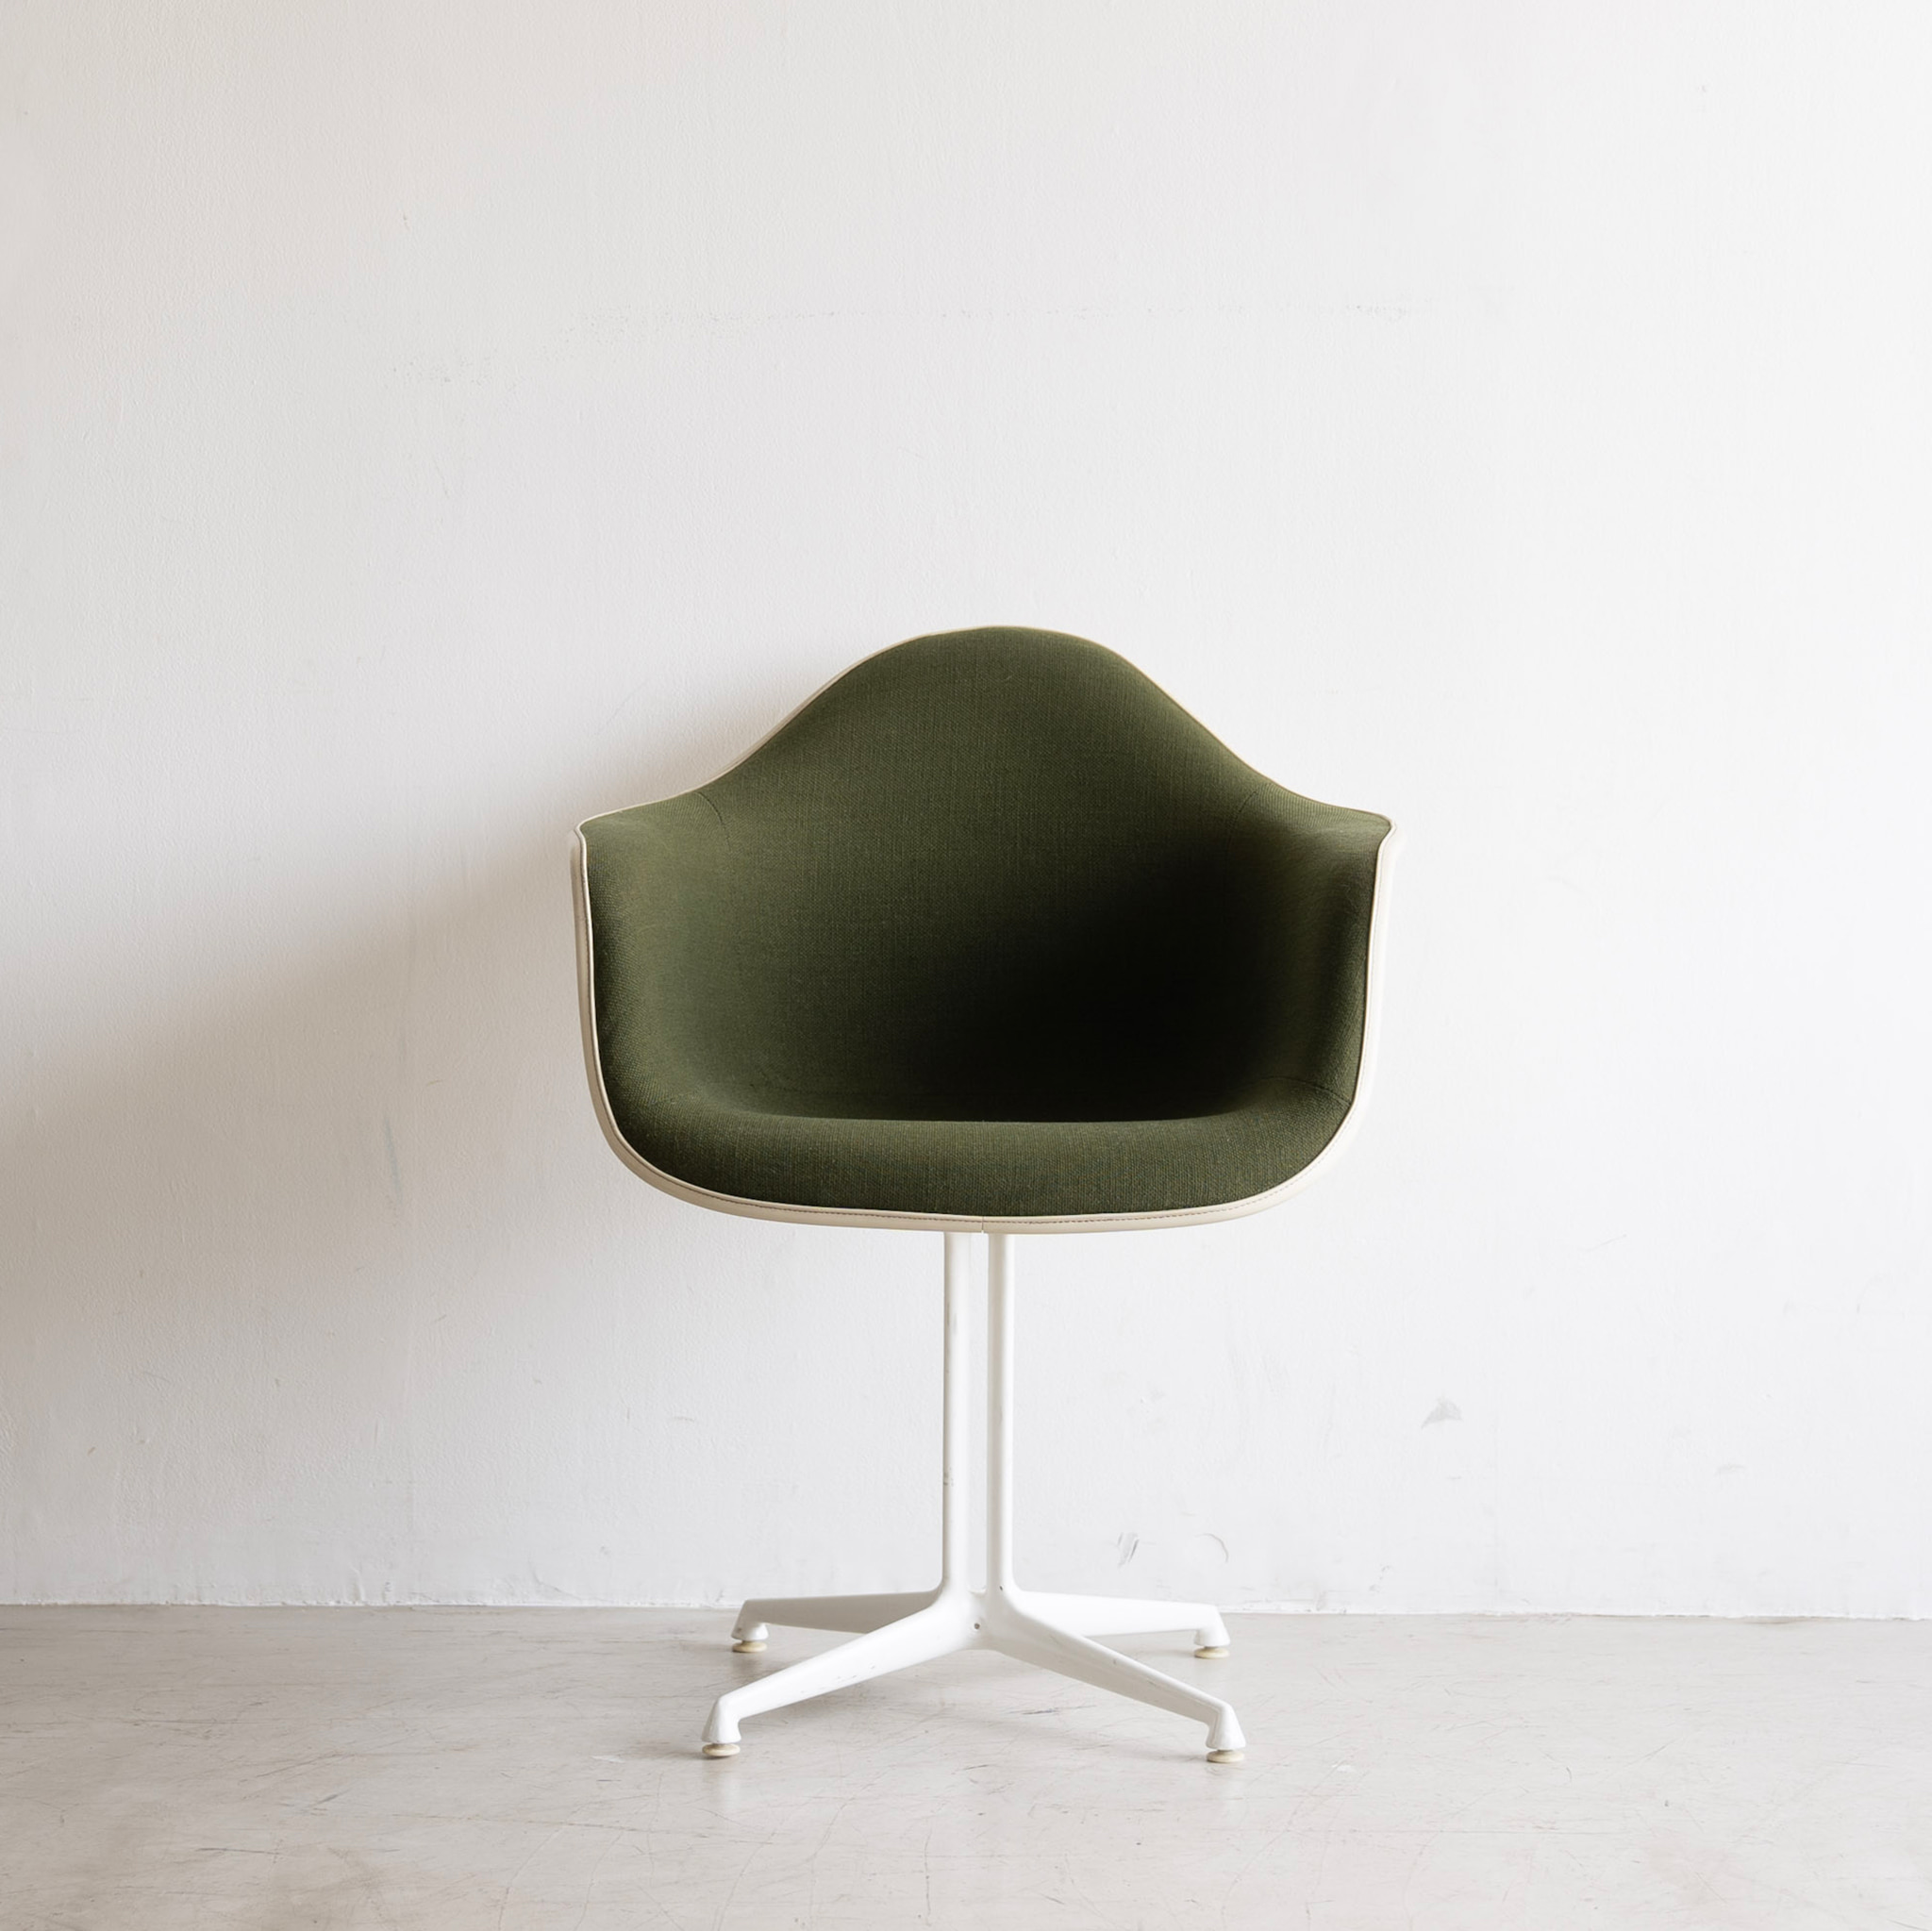 Charles & Ray Eames Herman Miller Textile Fiberglass Arm Shell Chair